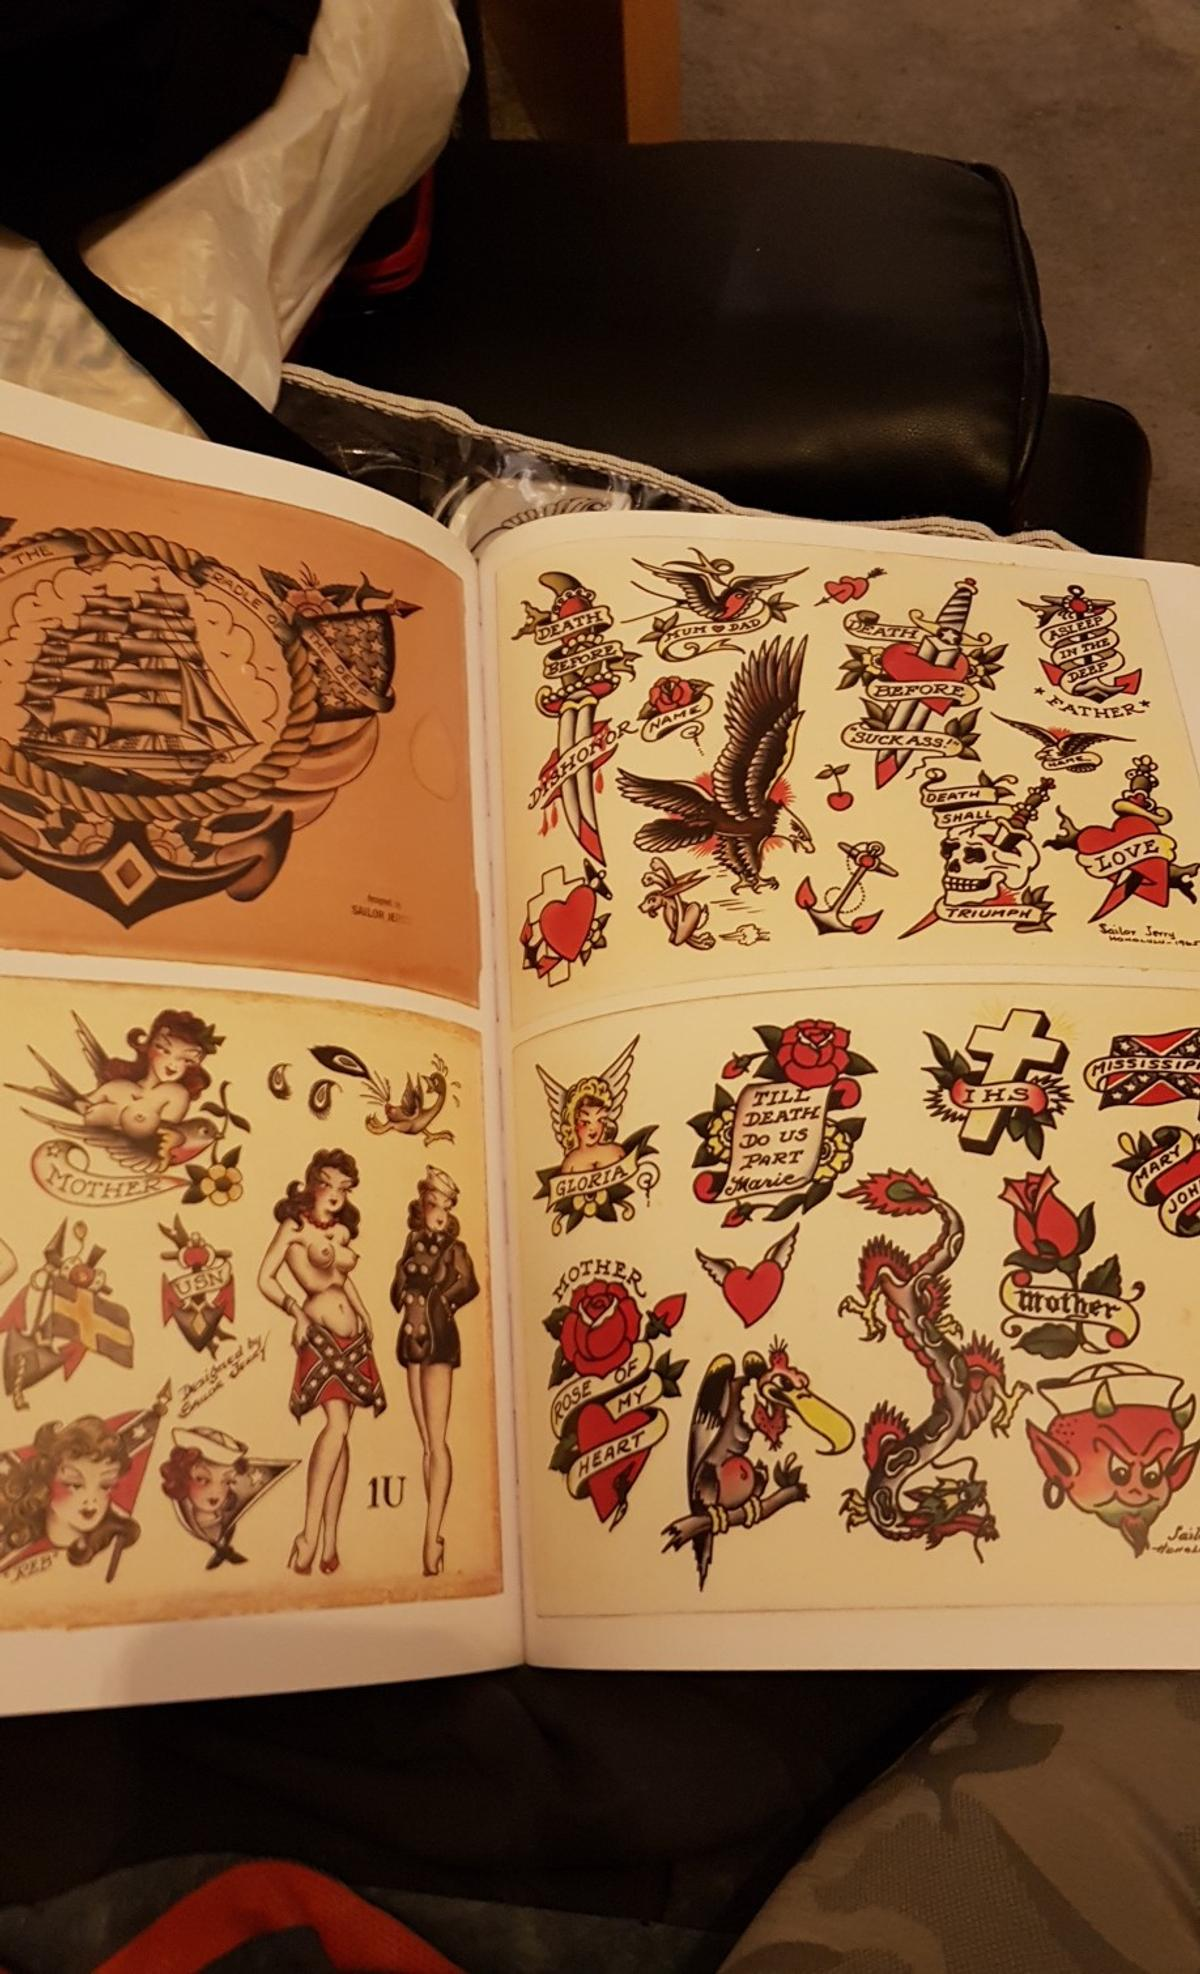 Sailor Jerry Treasure Chest Tattoo Book In E4 London Borough Of Waltham Forest For 40 00 For Sale Shpock